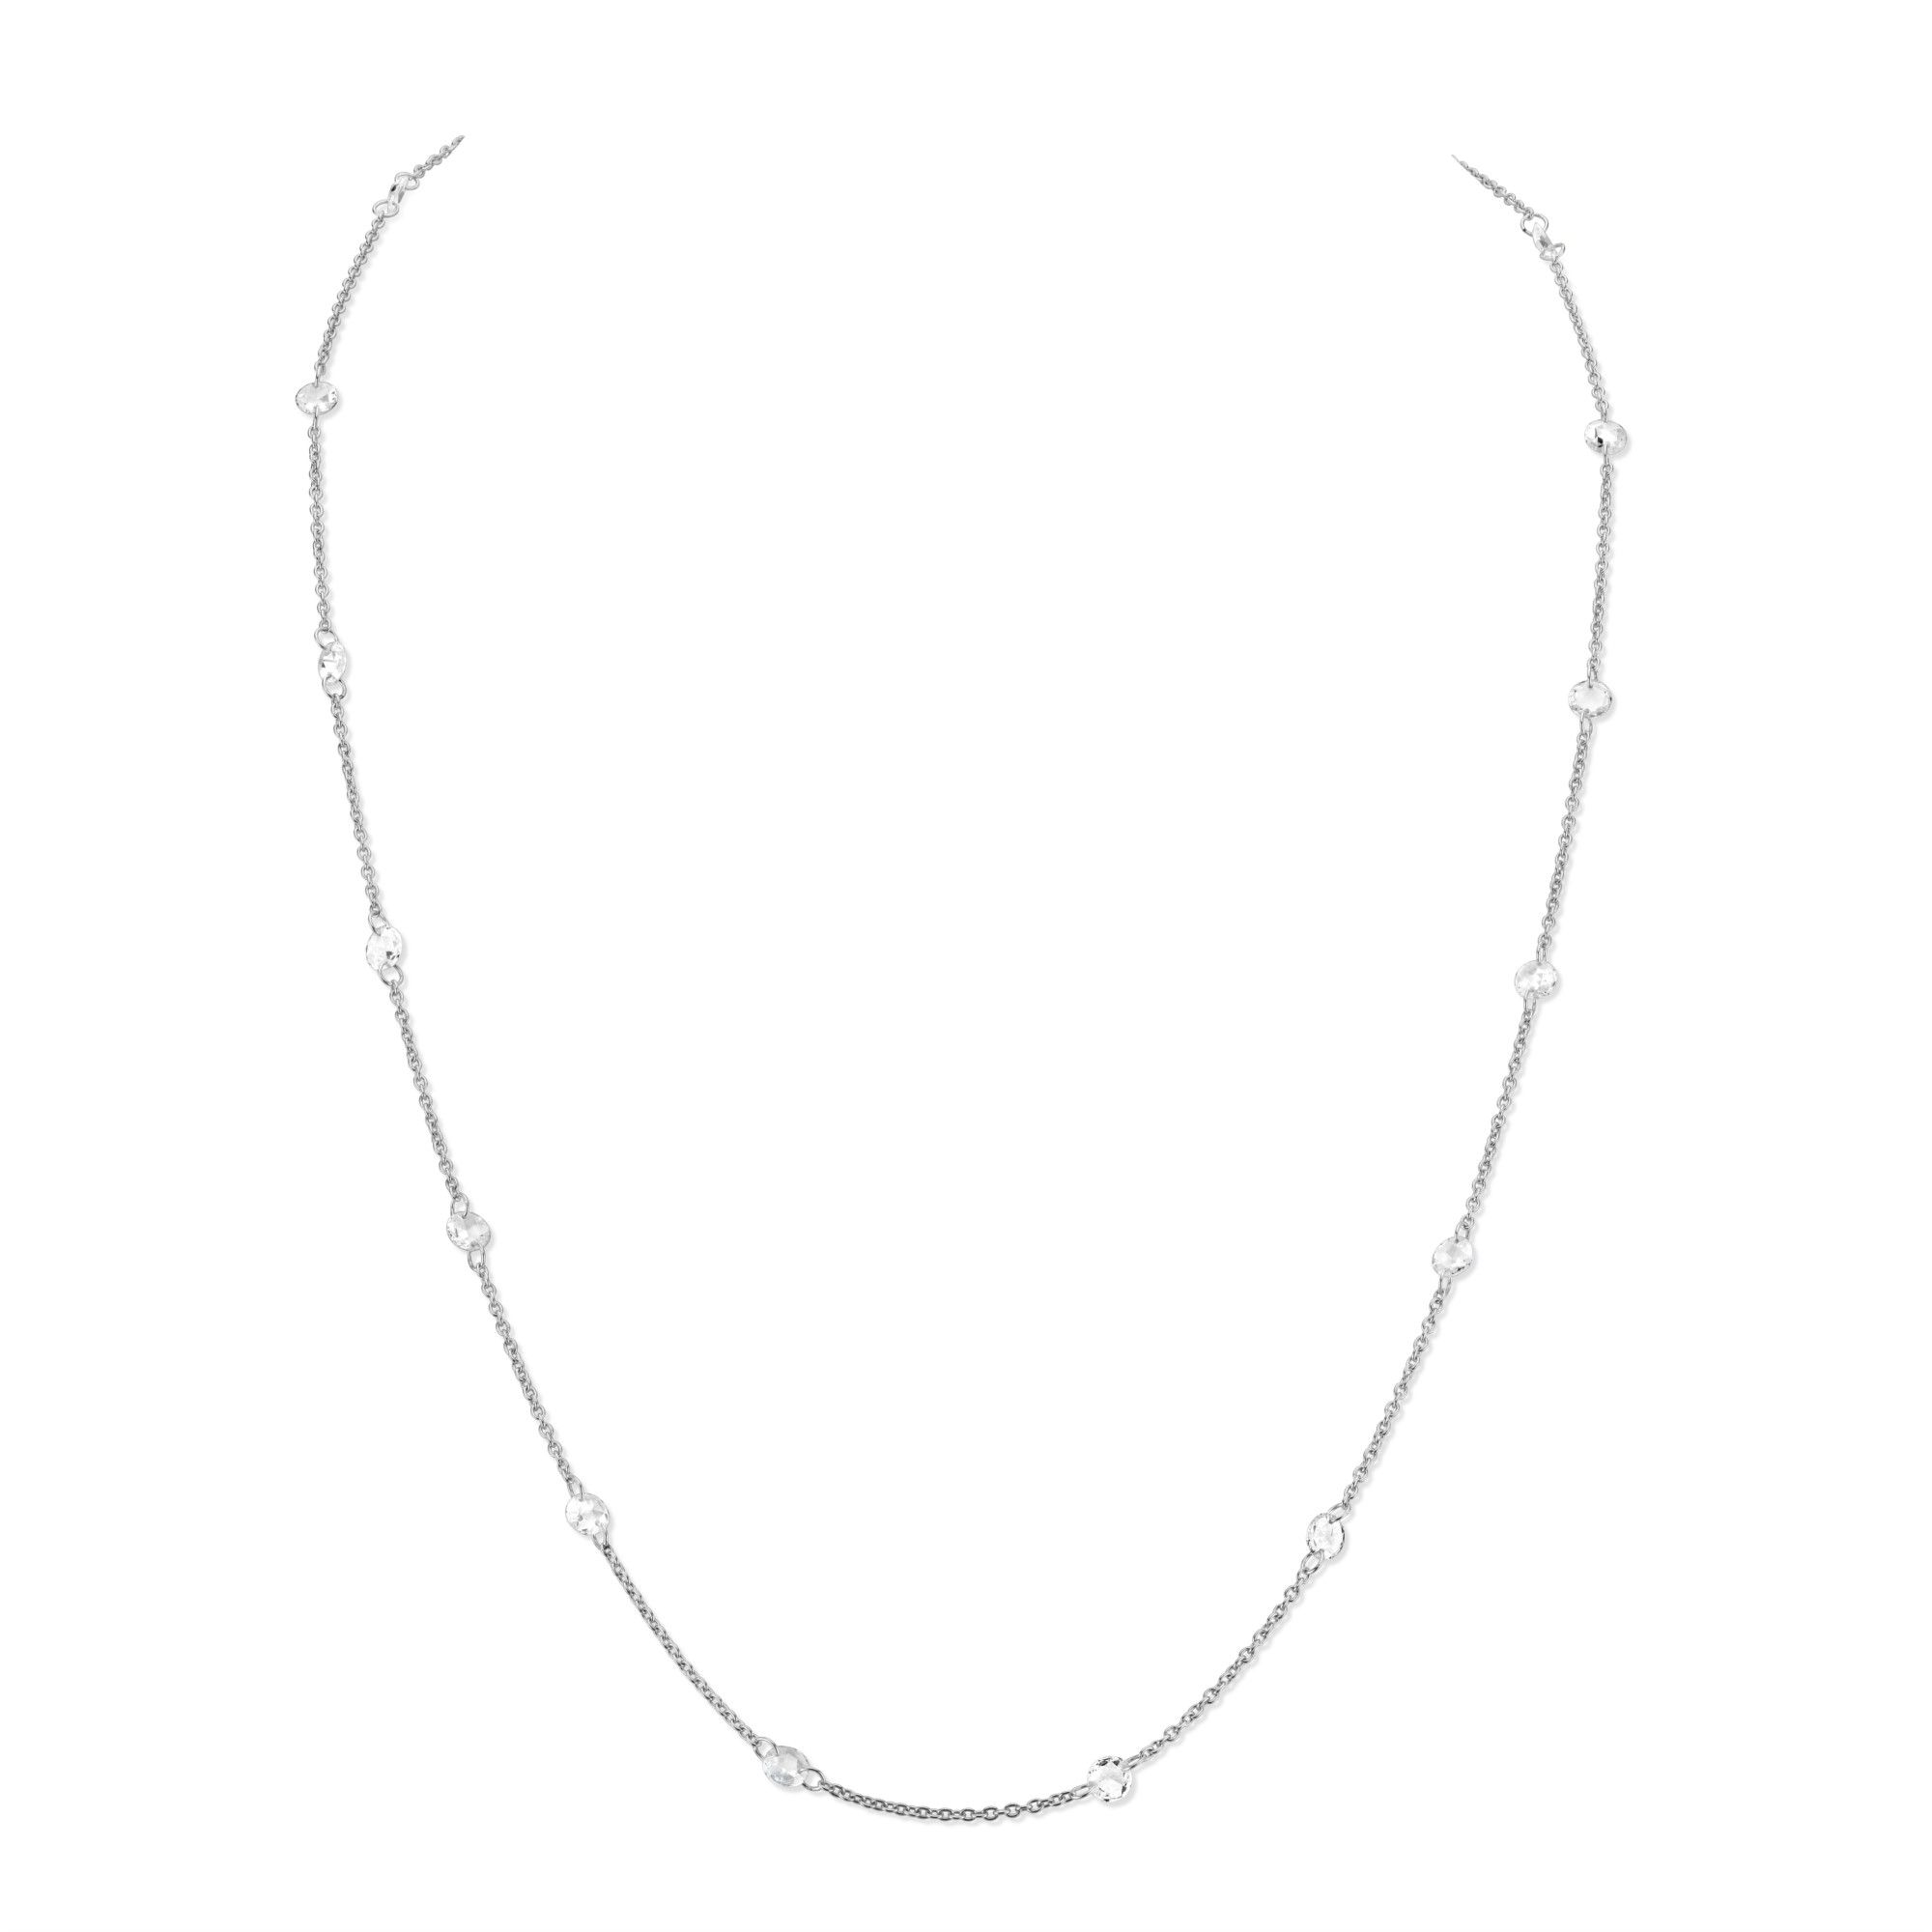 Sloane Street 18K White Gold 1.86cts  Diamonds Gold Necklace with Stones CH021-WD-W-18-16